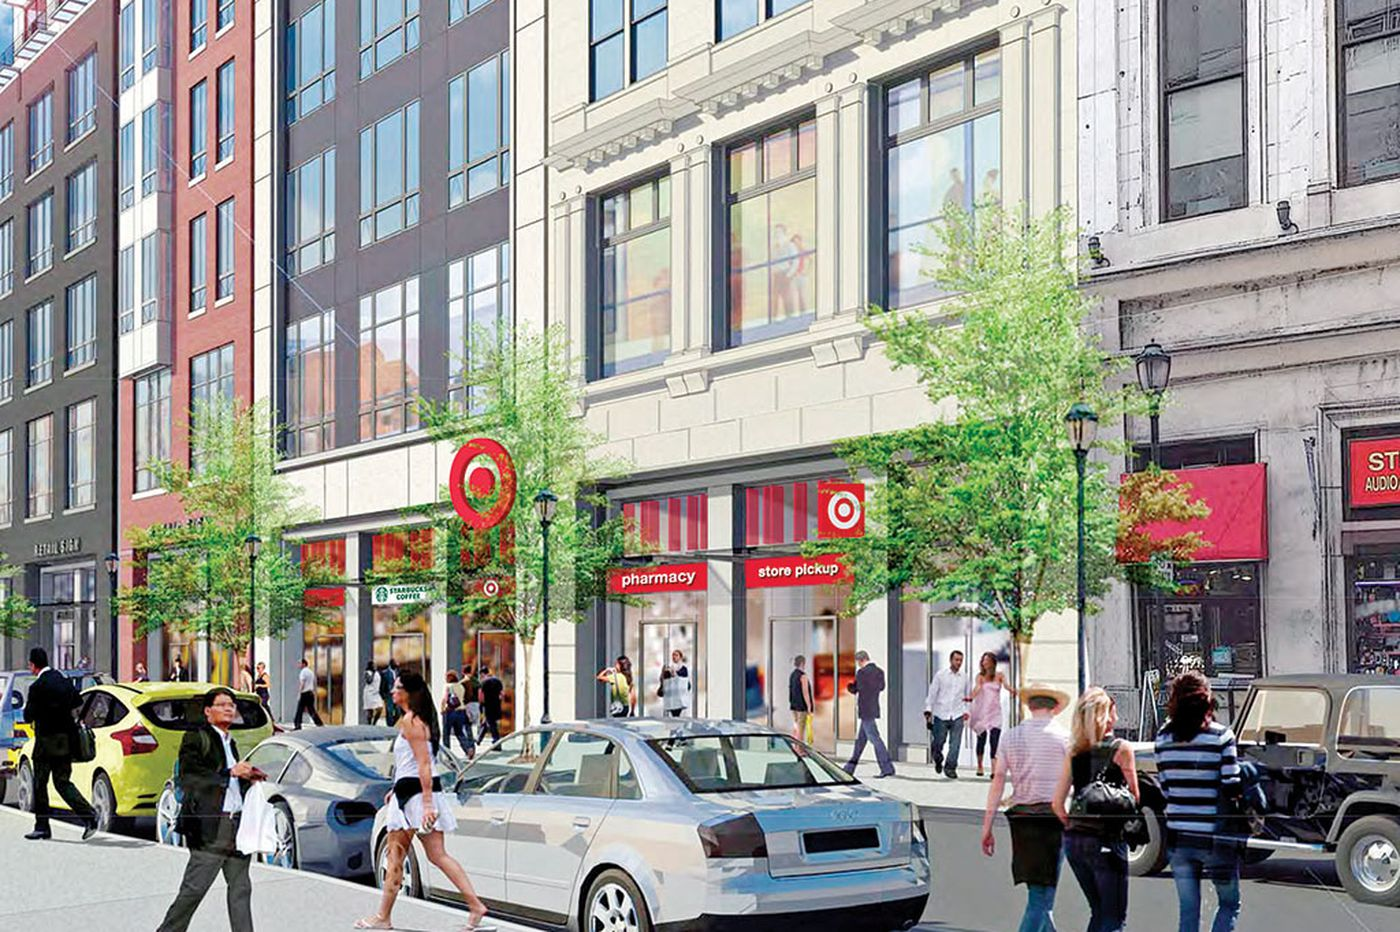 Target confirms it will open store at 12th and Chestnut in 2016